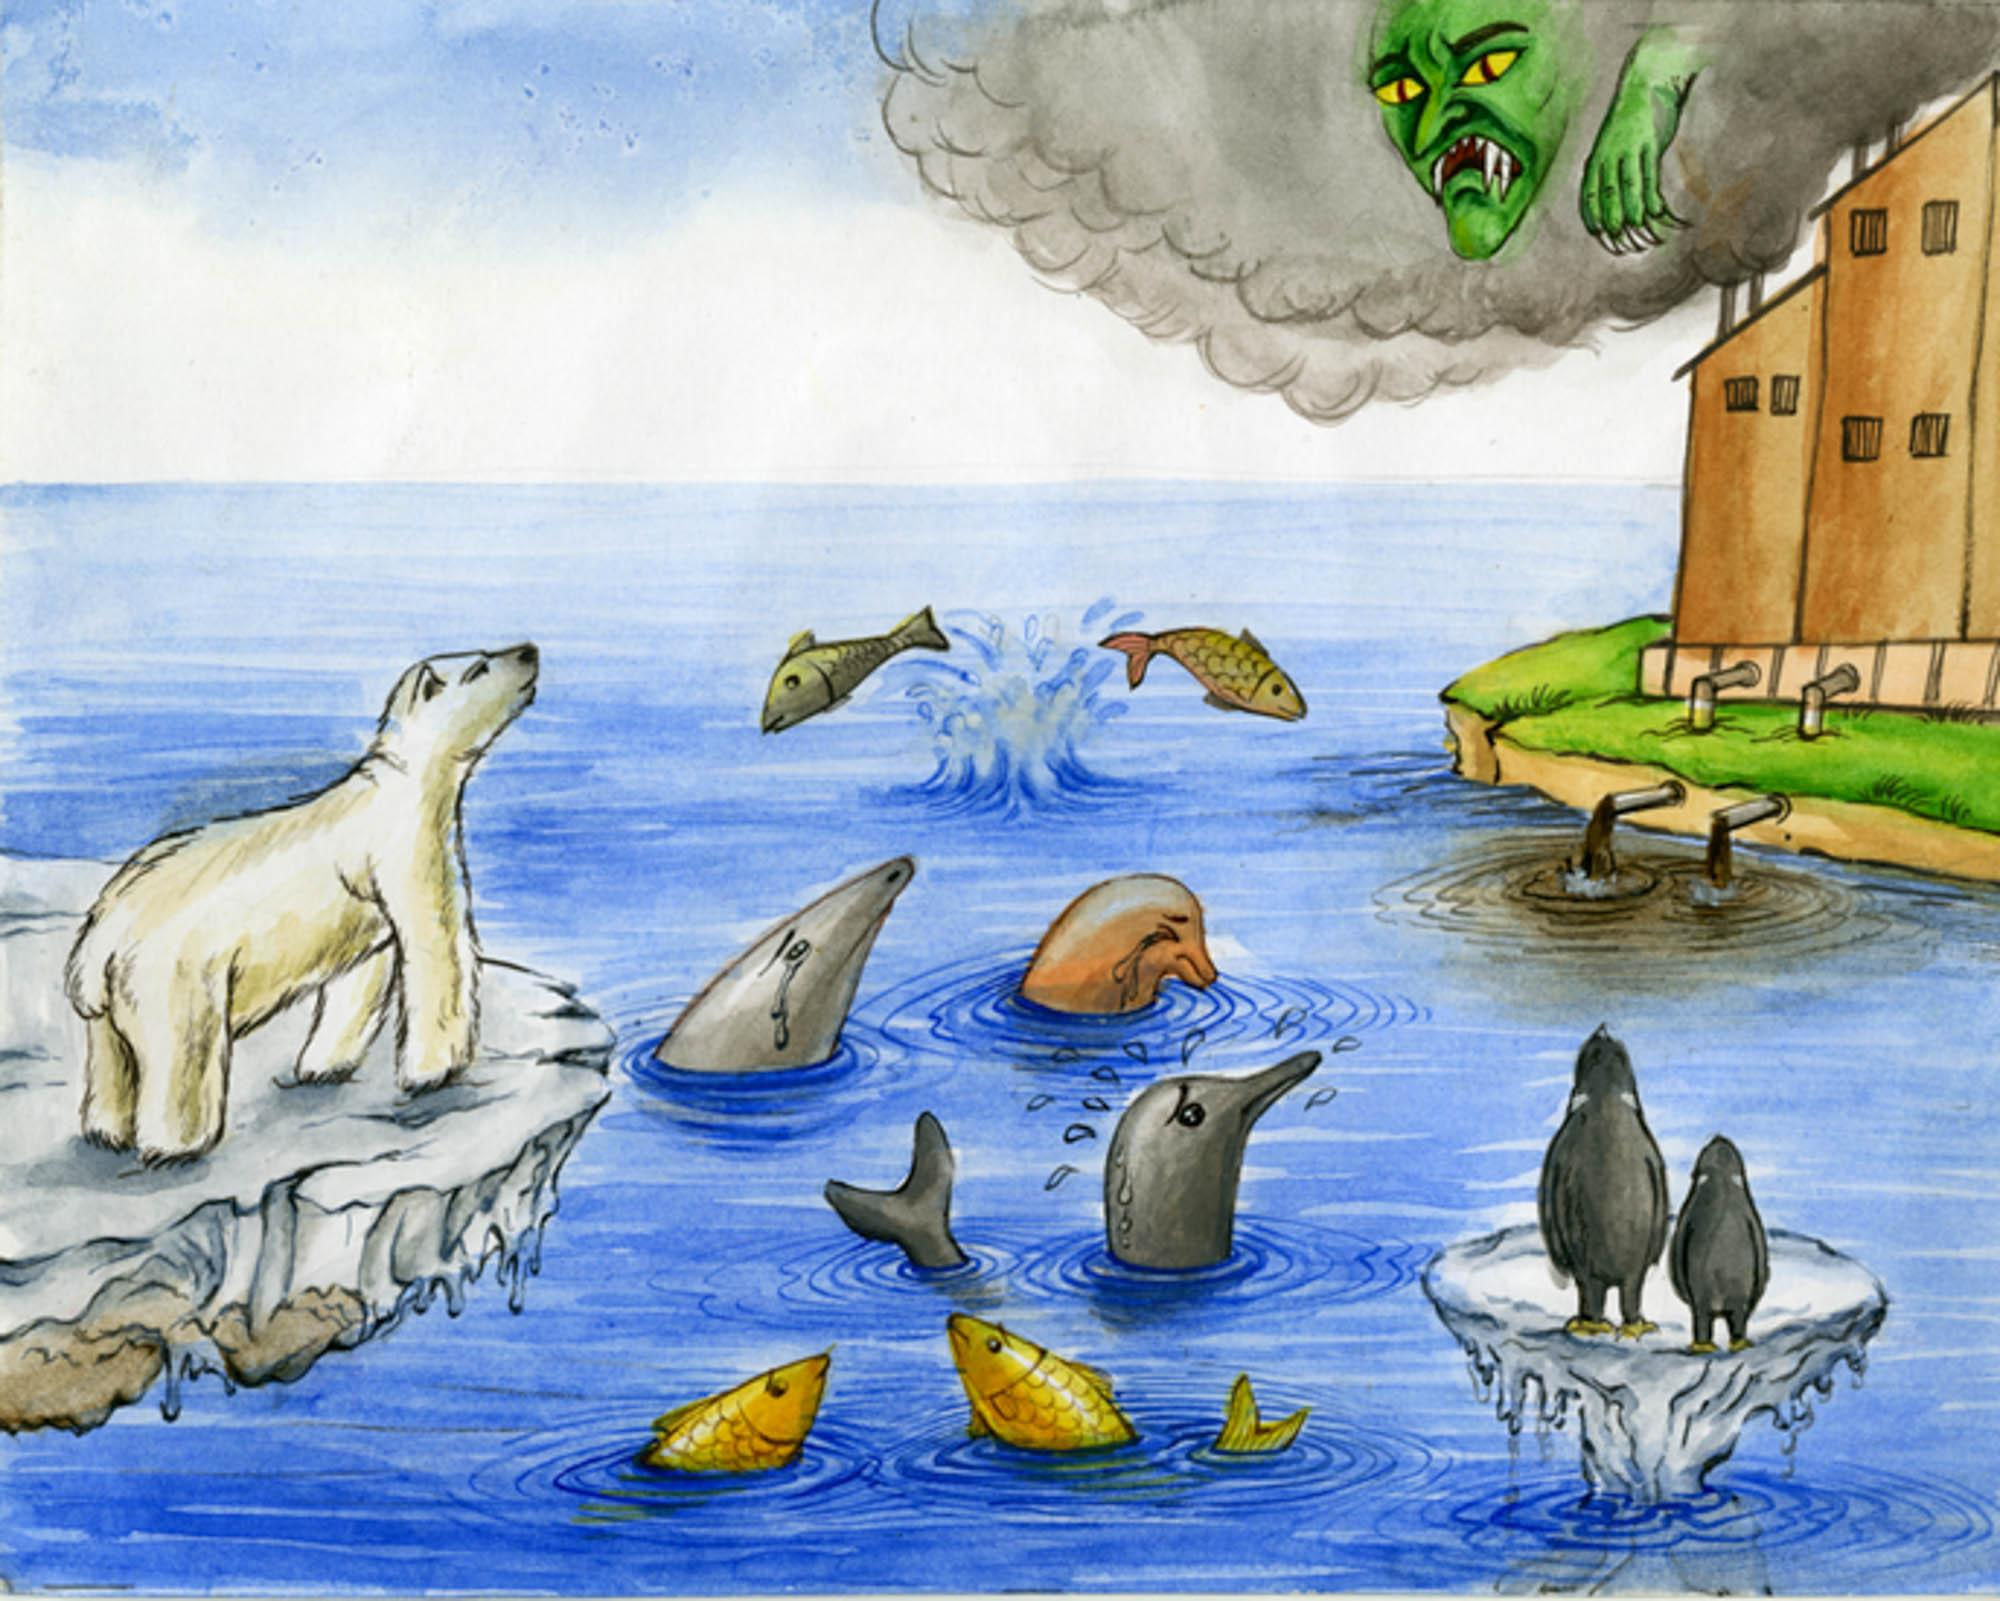 Global Warming, Neha Ray, age 13 Kolkata, India (Submitted Independently), 2013 River of Words Finalist